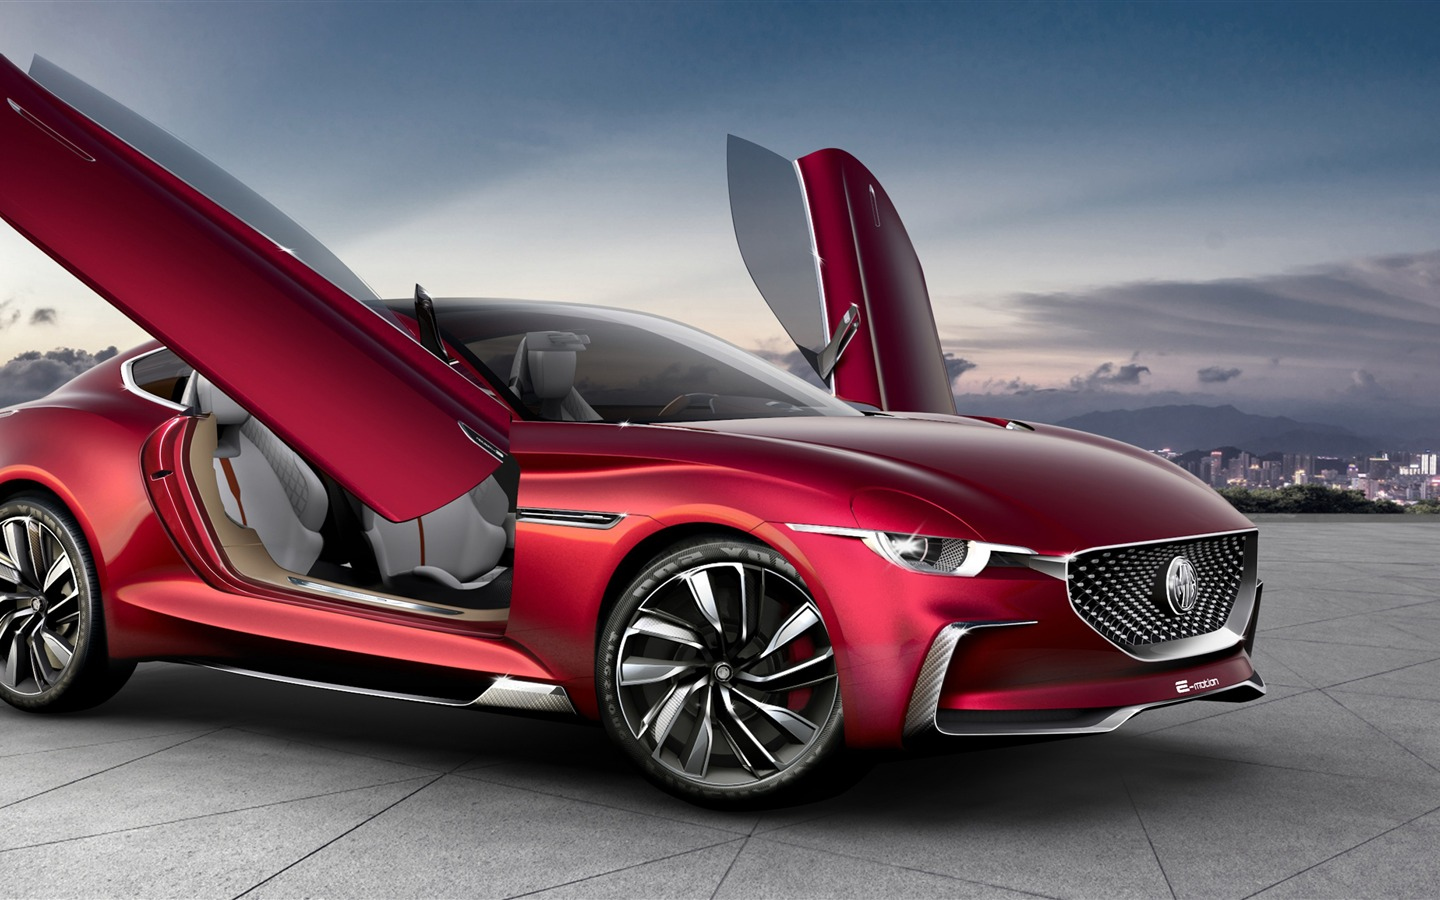 2020 MG E motion Electric Cars HD Poster Preview